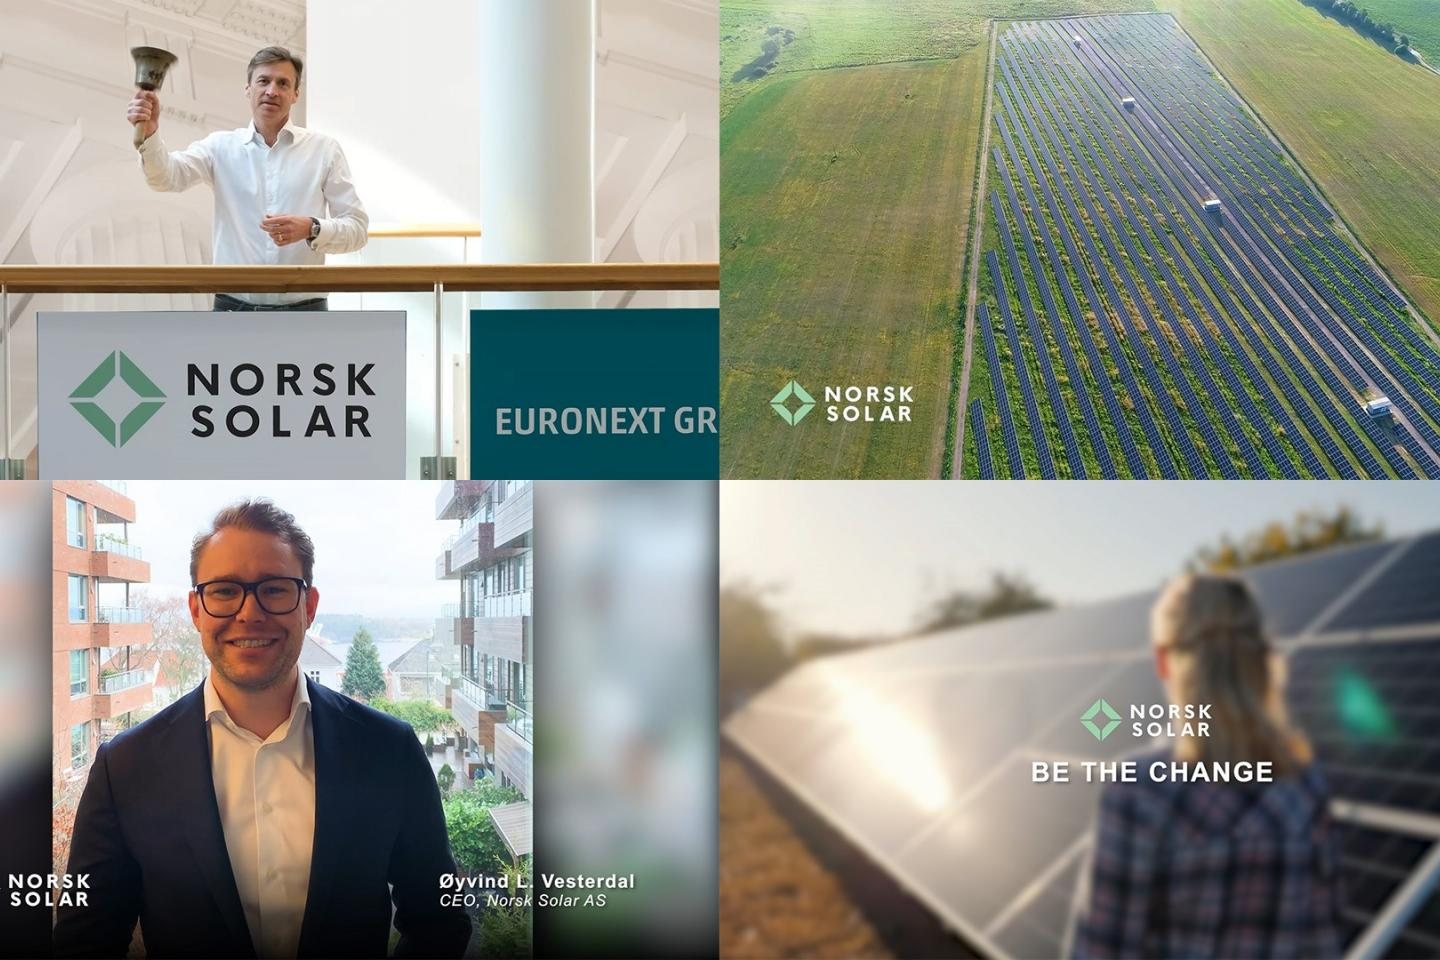 Norsk Solar